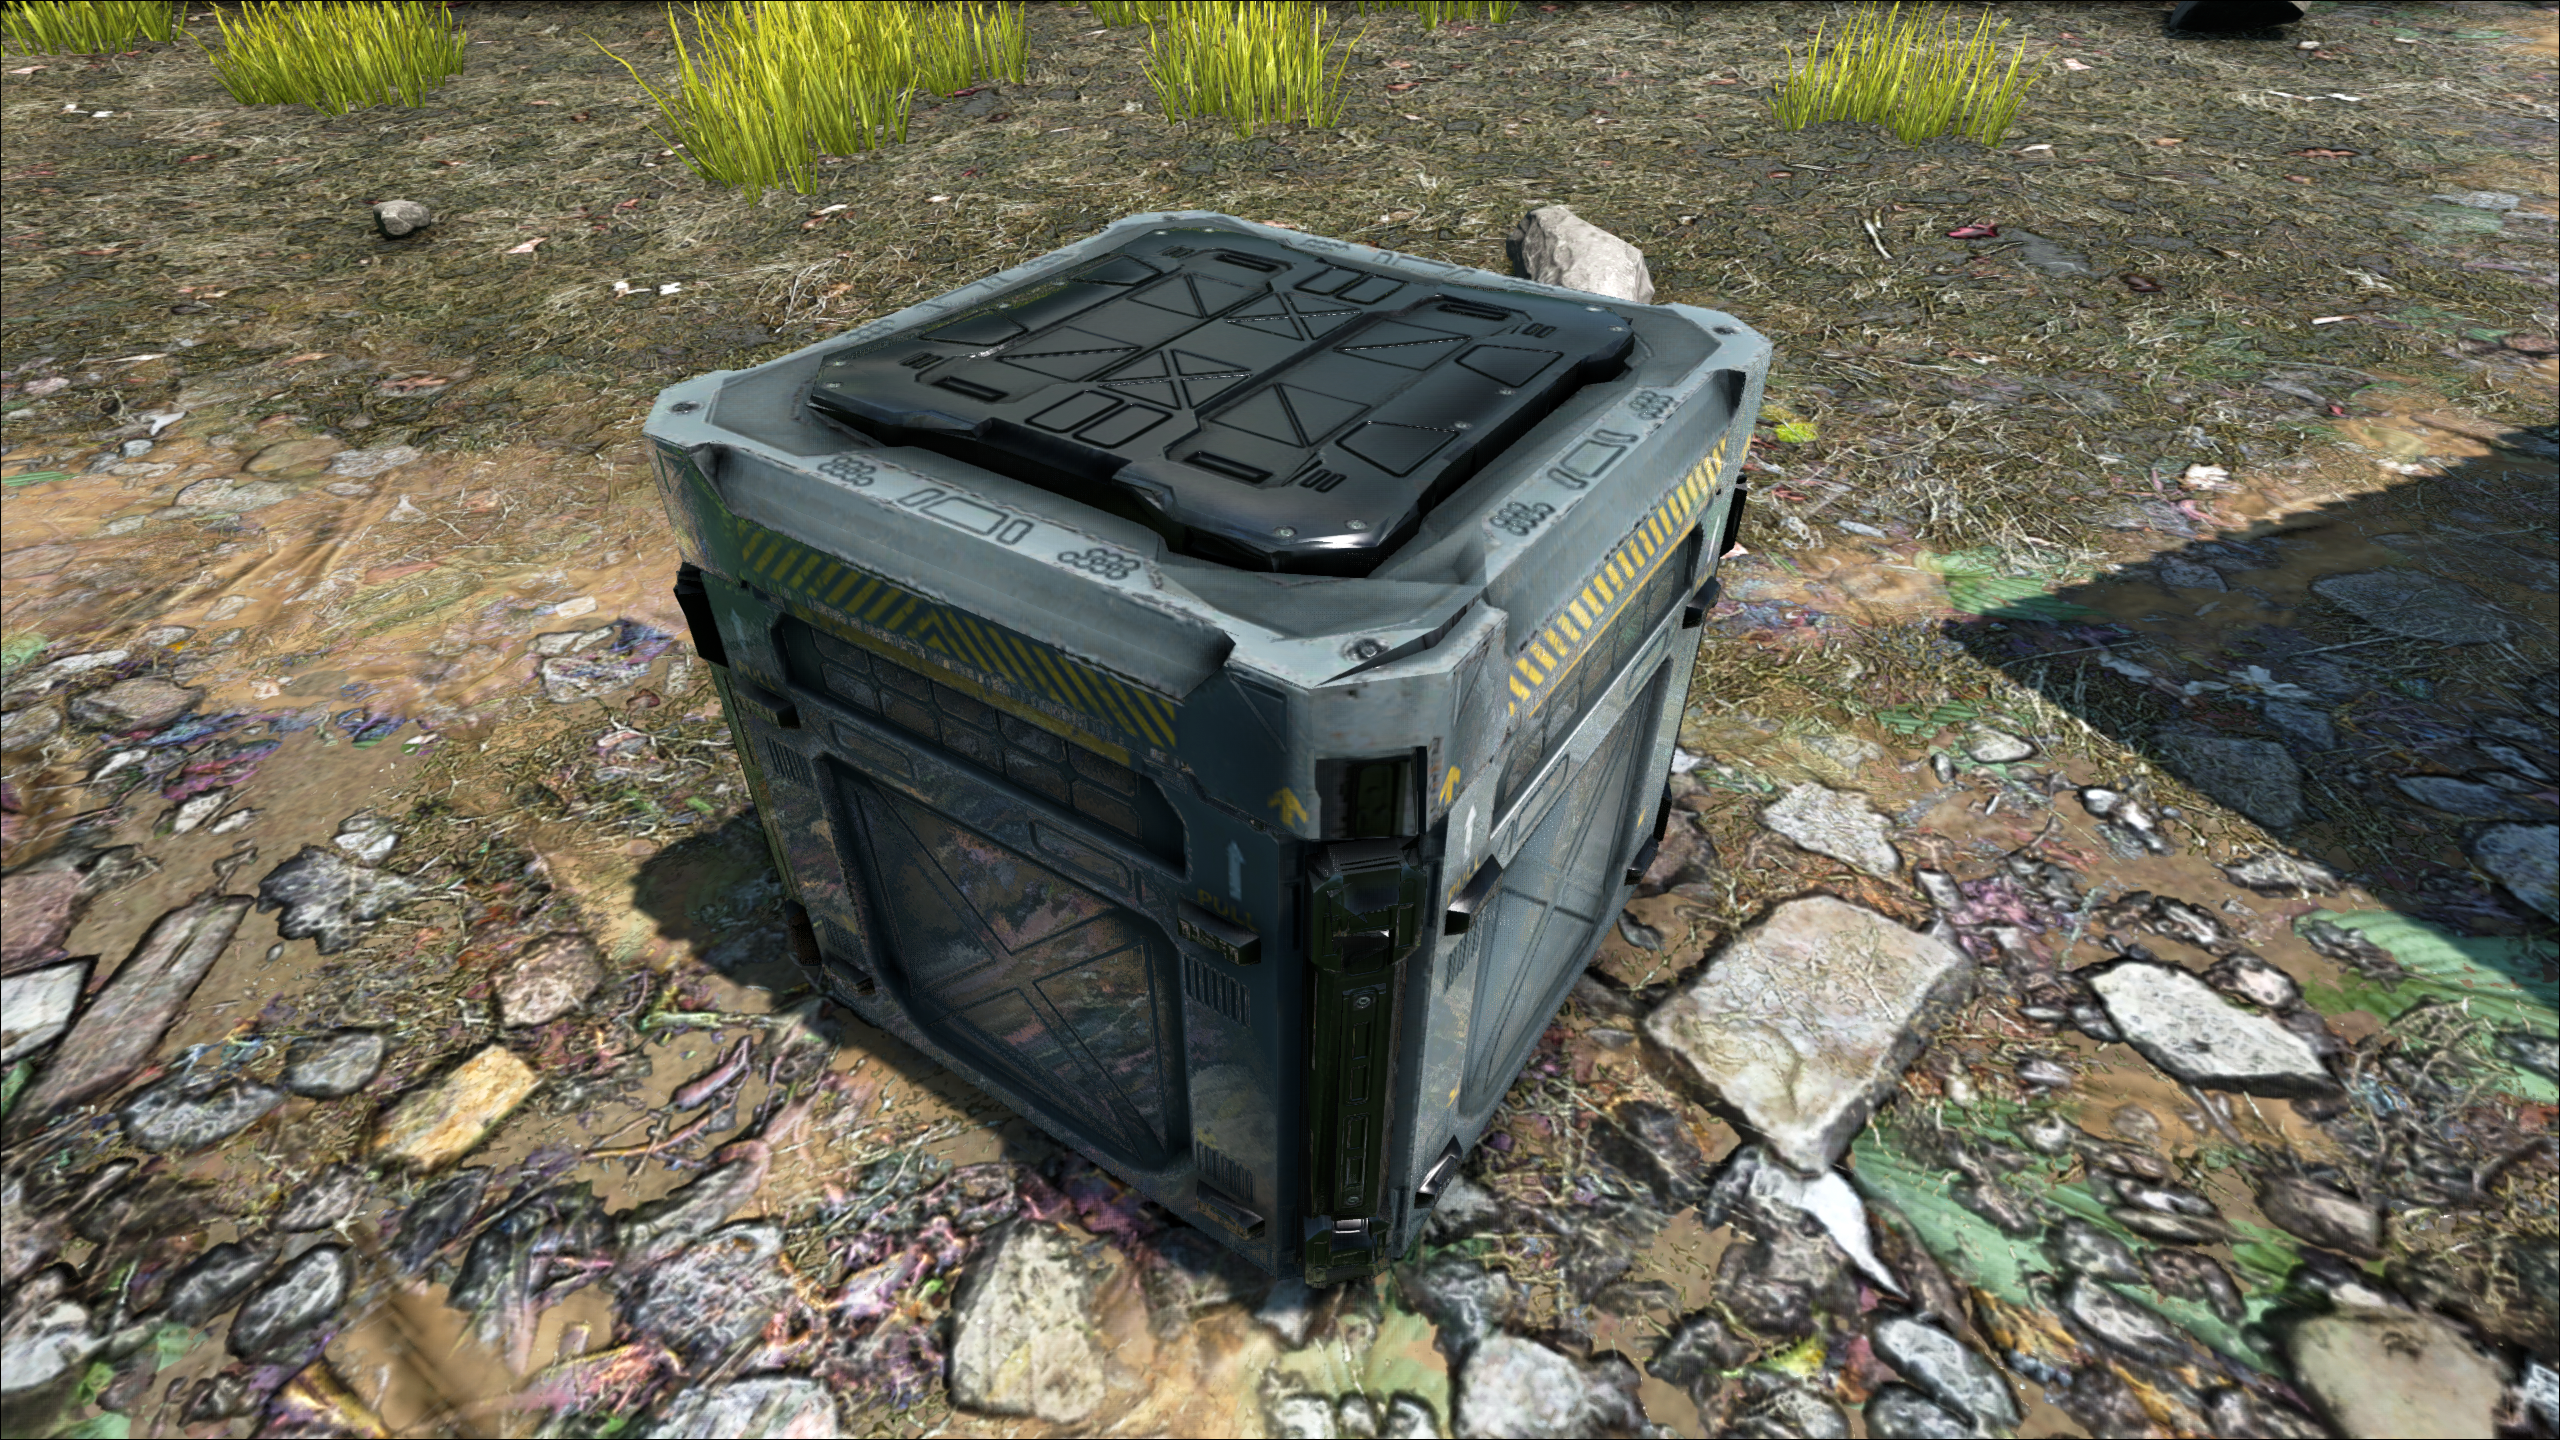 A Supply Crate, ready to open